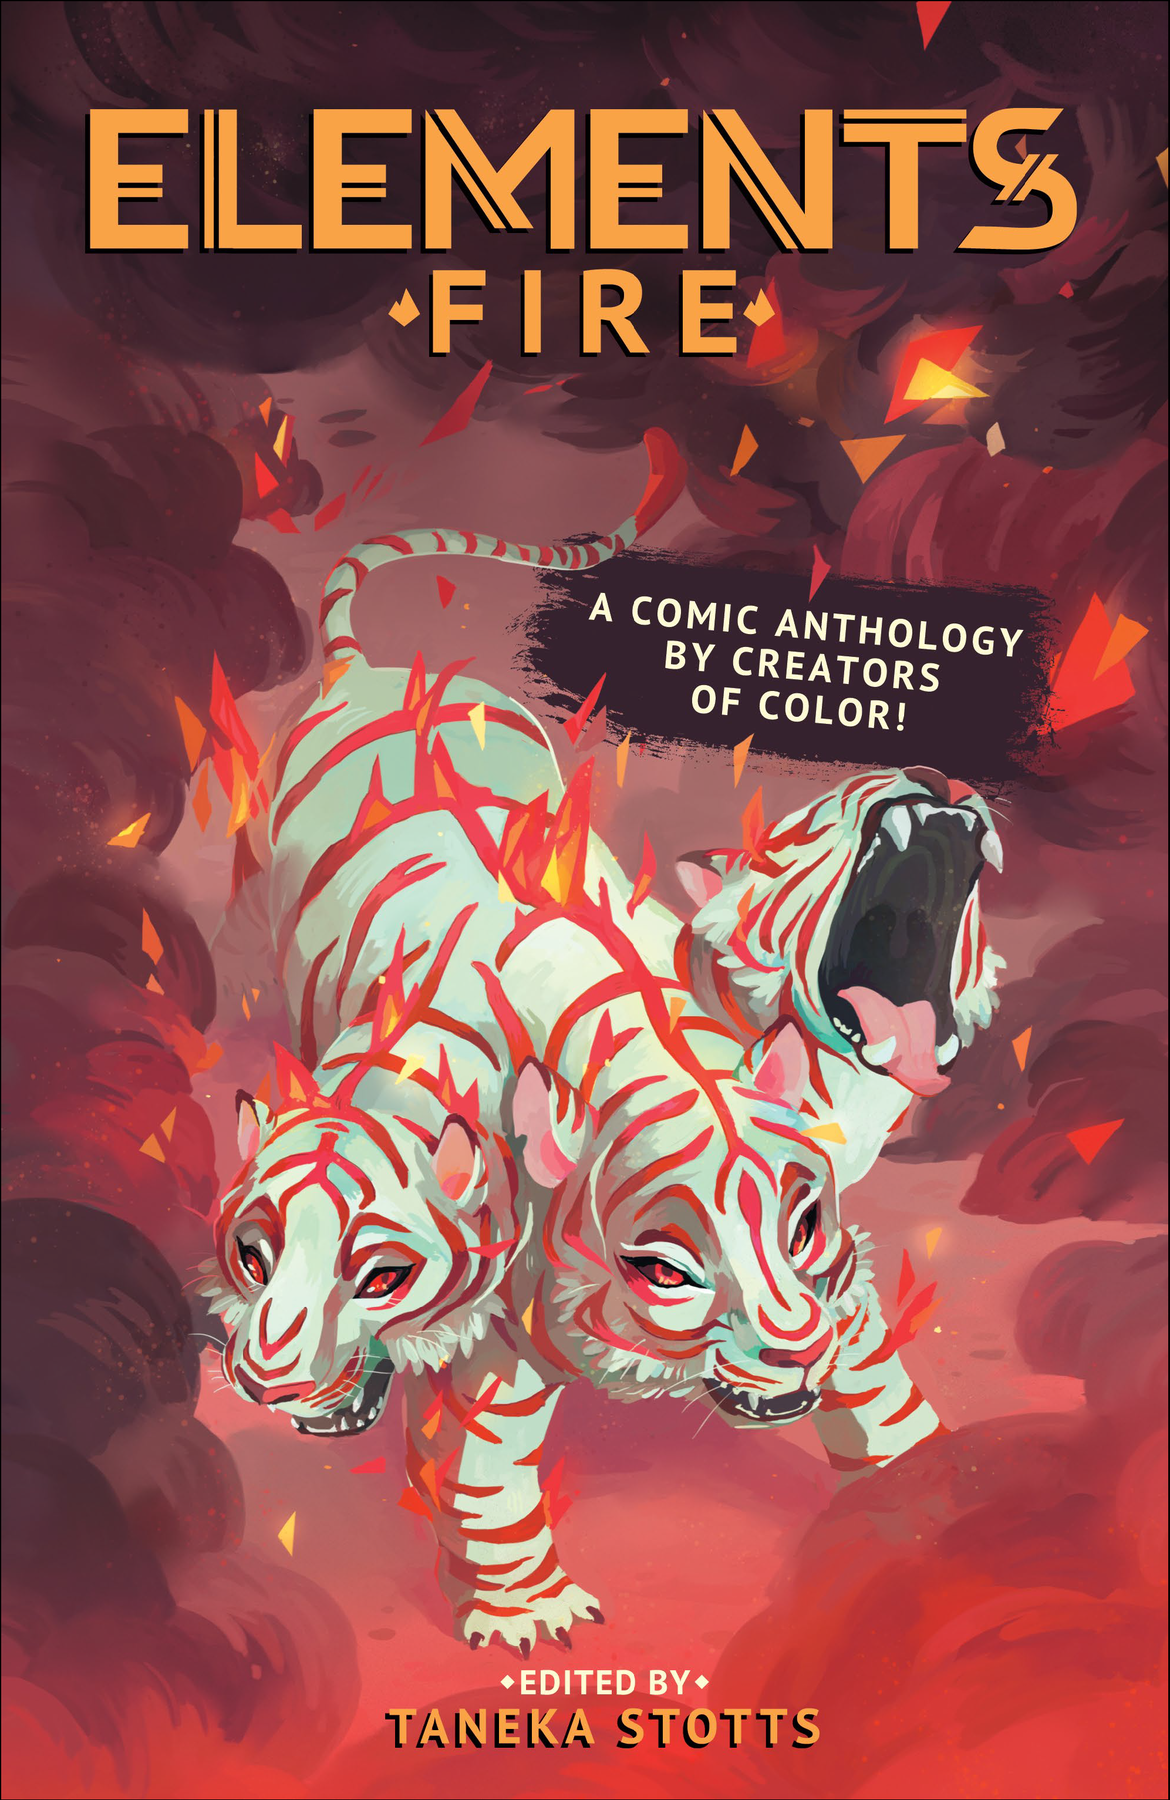 ELEMENTS: Fire cover by Chrystin Garland